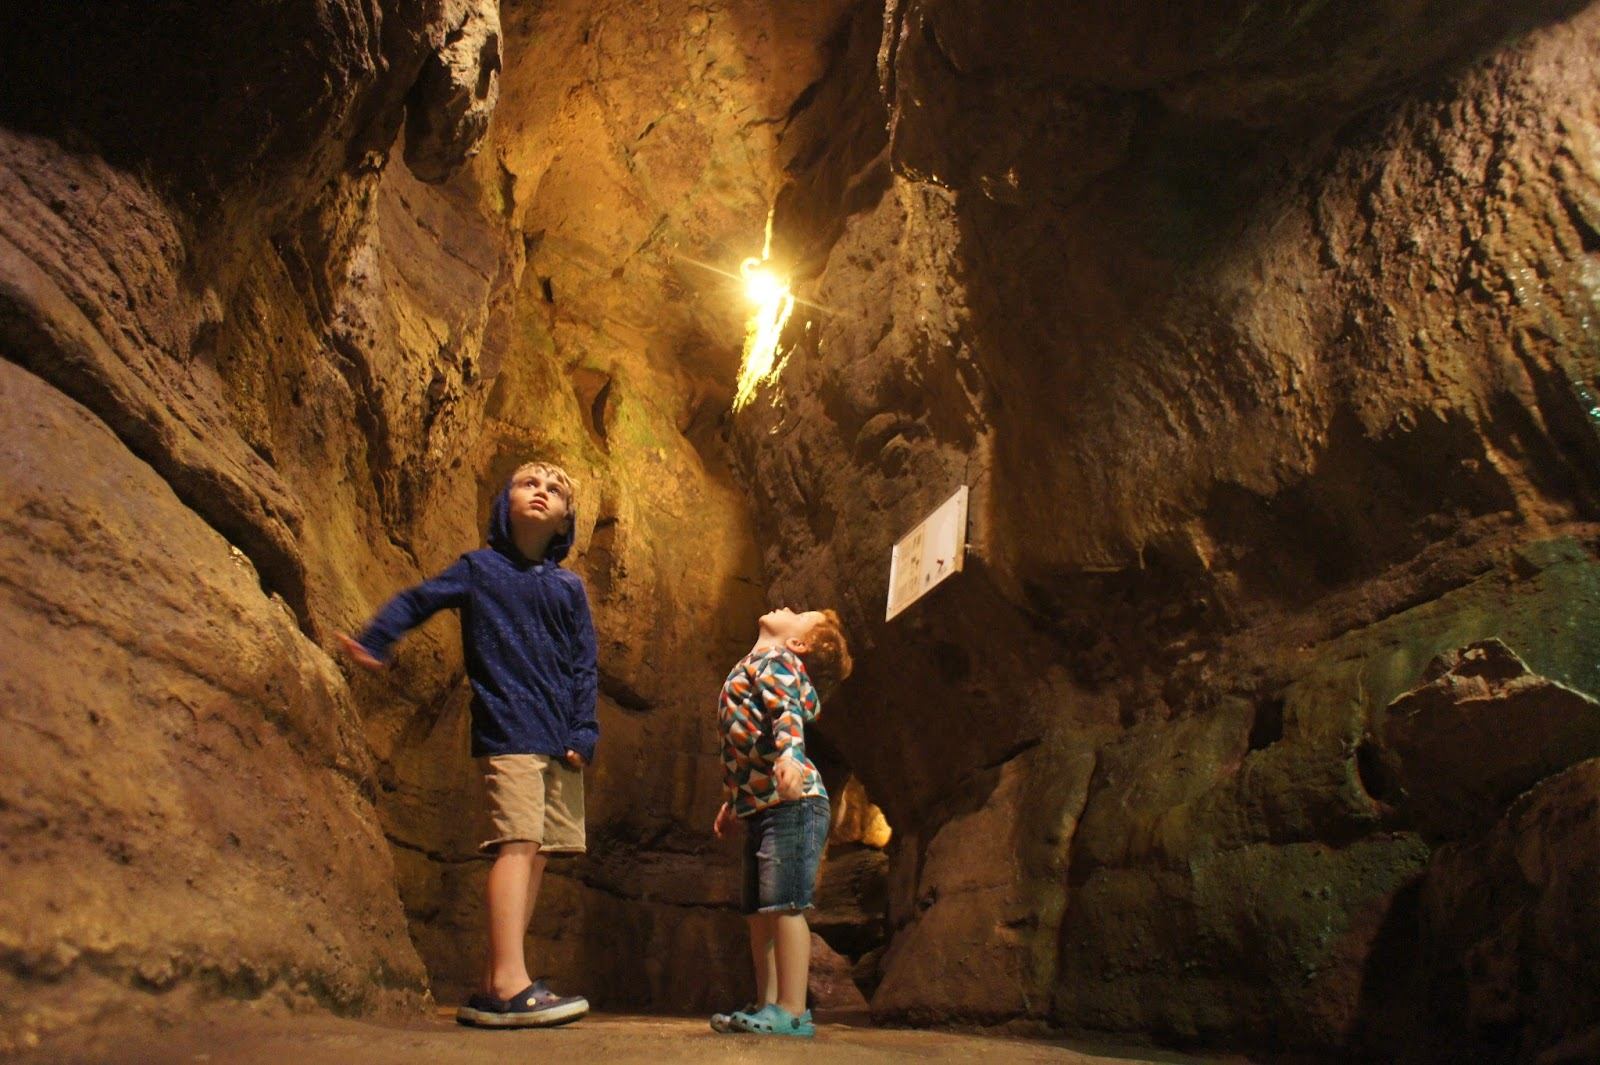 two young boys in a cavern